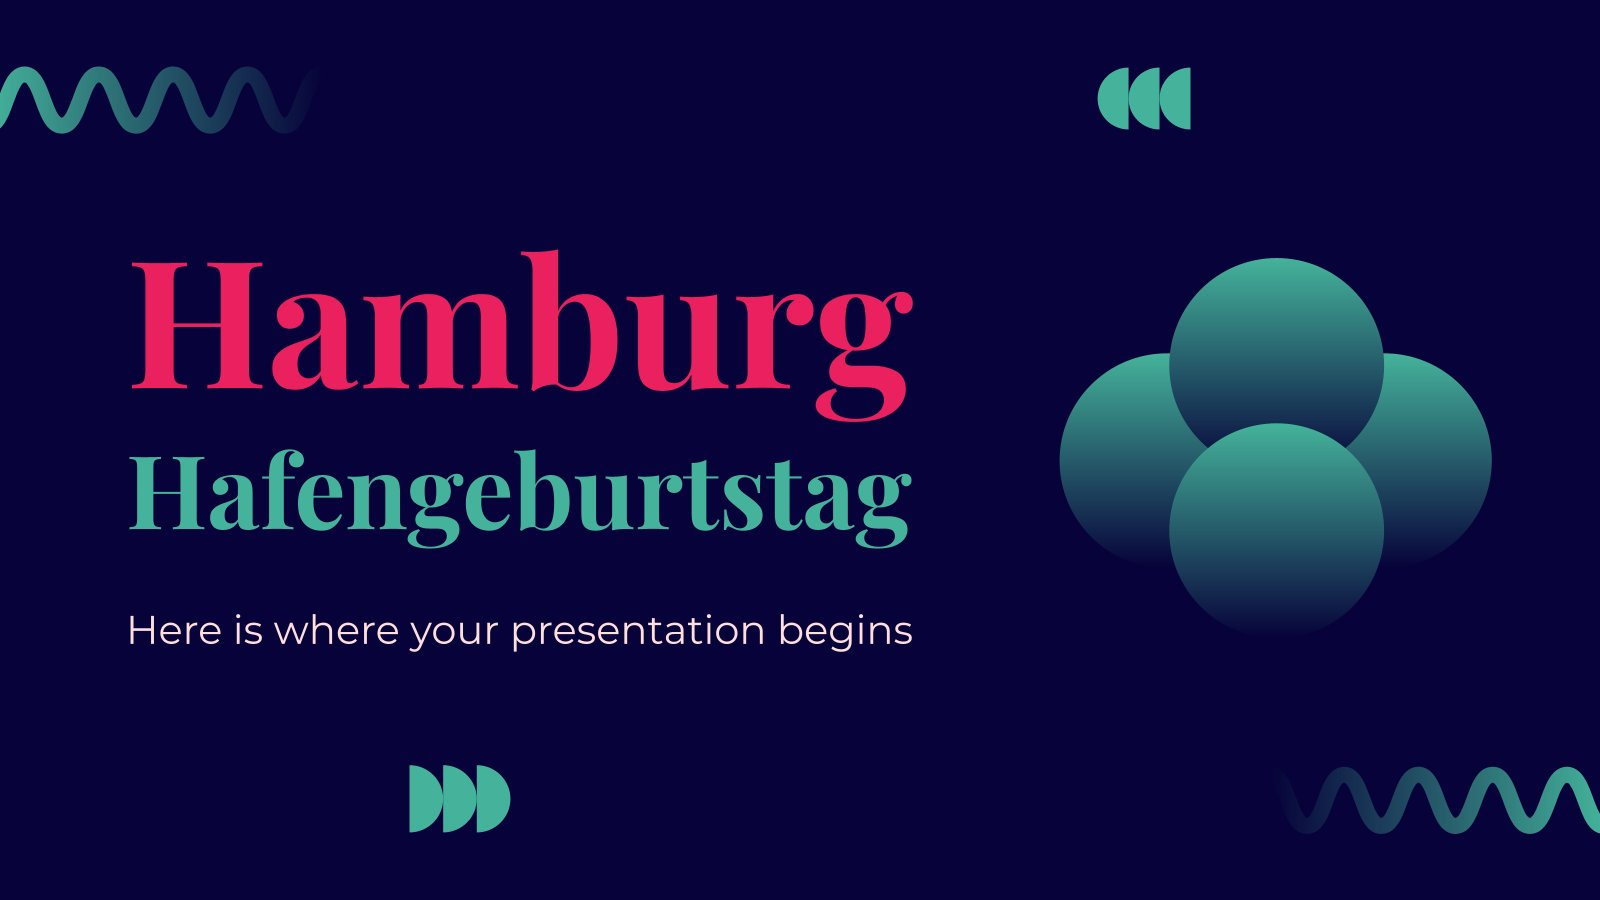 Hamburg Hafengeburtstag presentation template